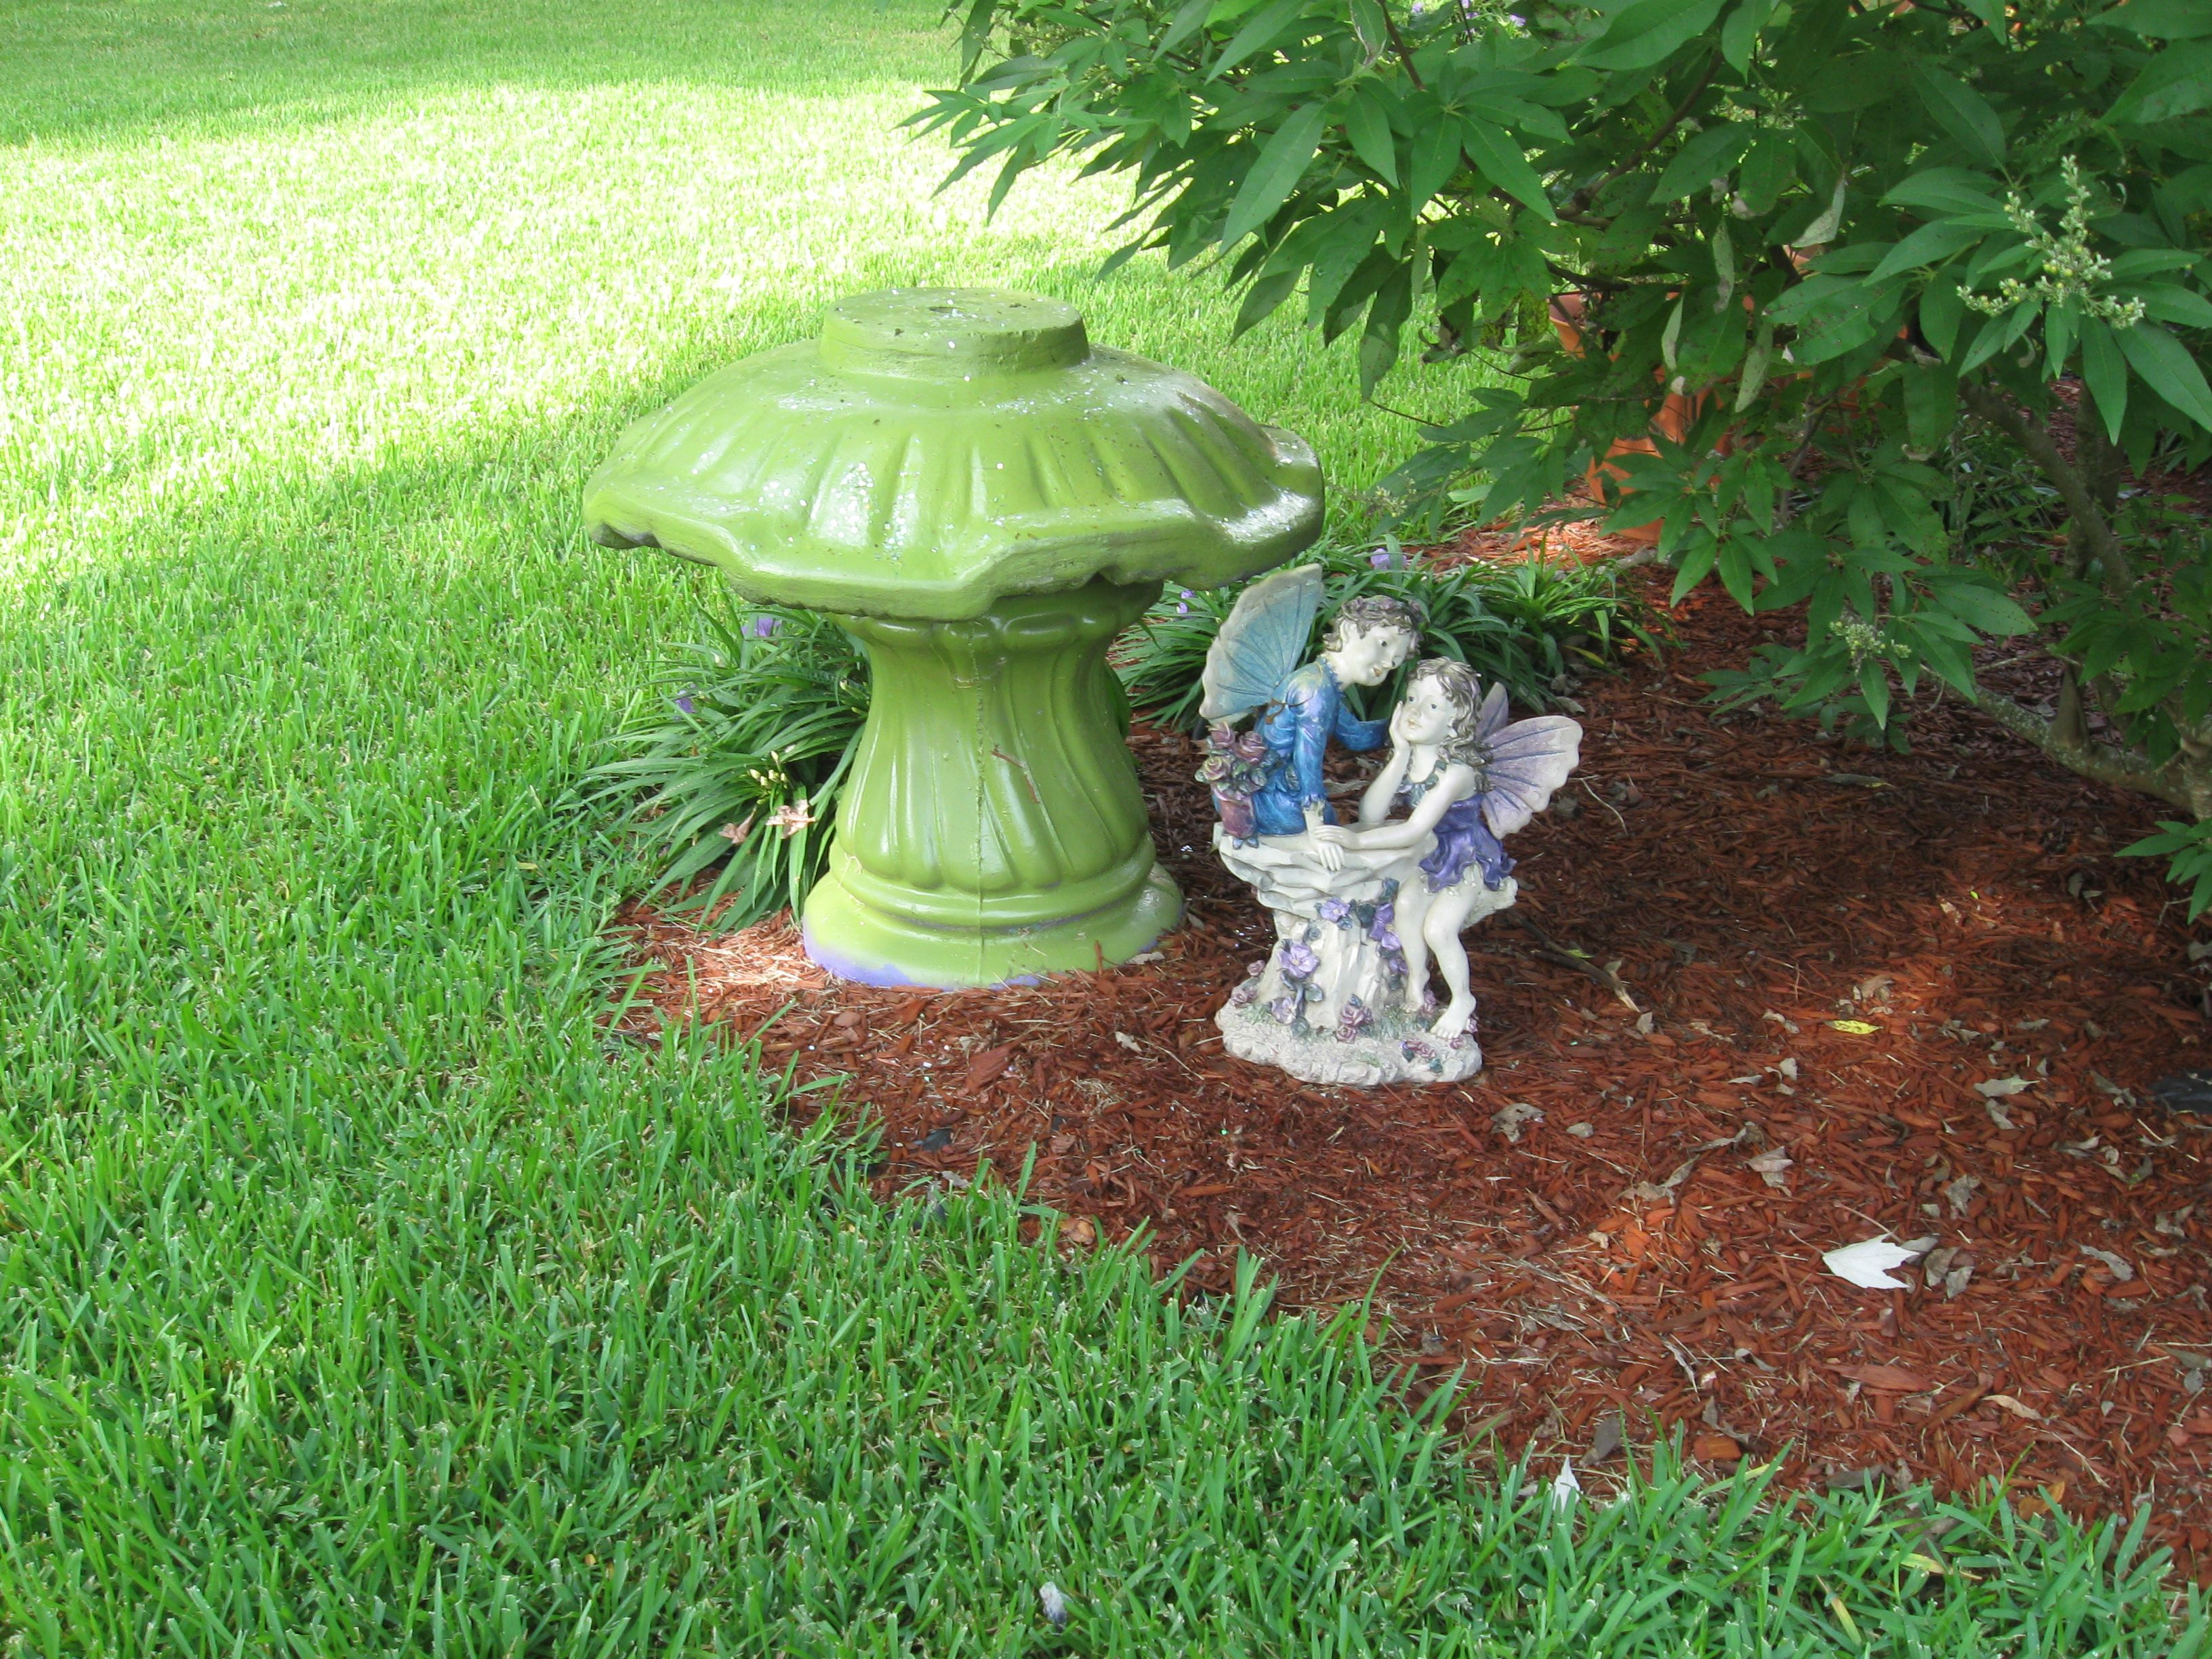 What To Do With An Old Concrete Bird Bath Make A Mushroom And Paint It Bird Bath Concrete Bird Bath Outdoor Crafts